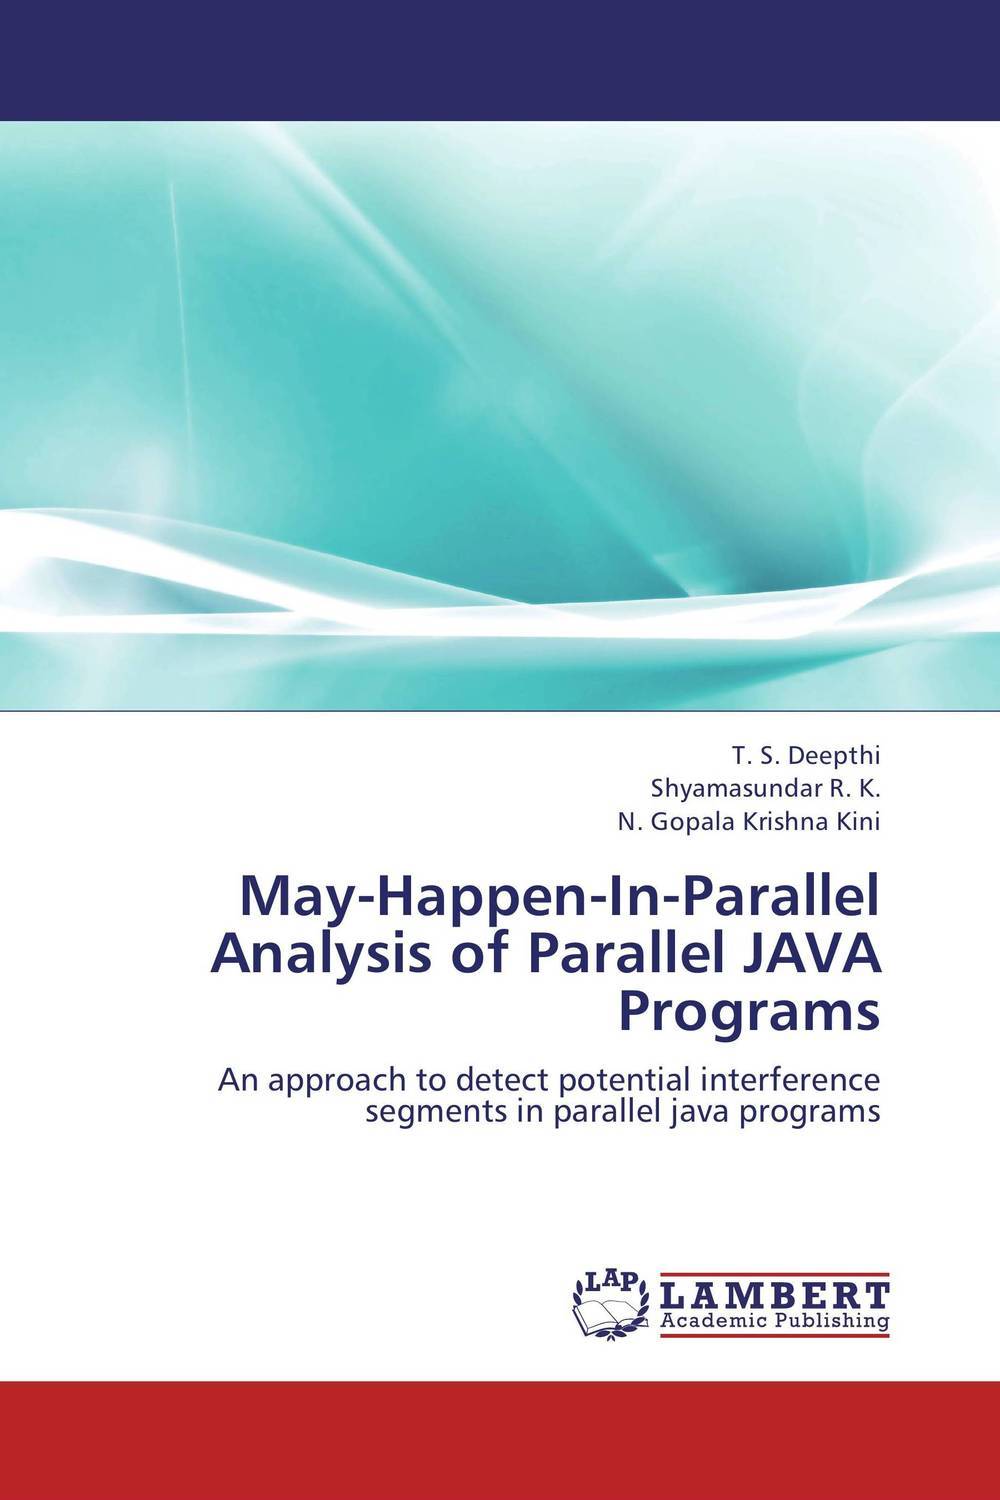 May-Happen-In-Parallel Analysis of Parallel JAVA Programs